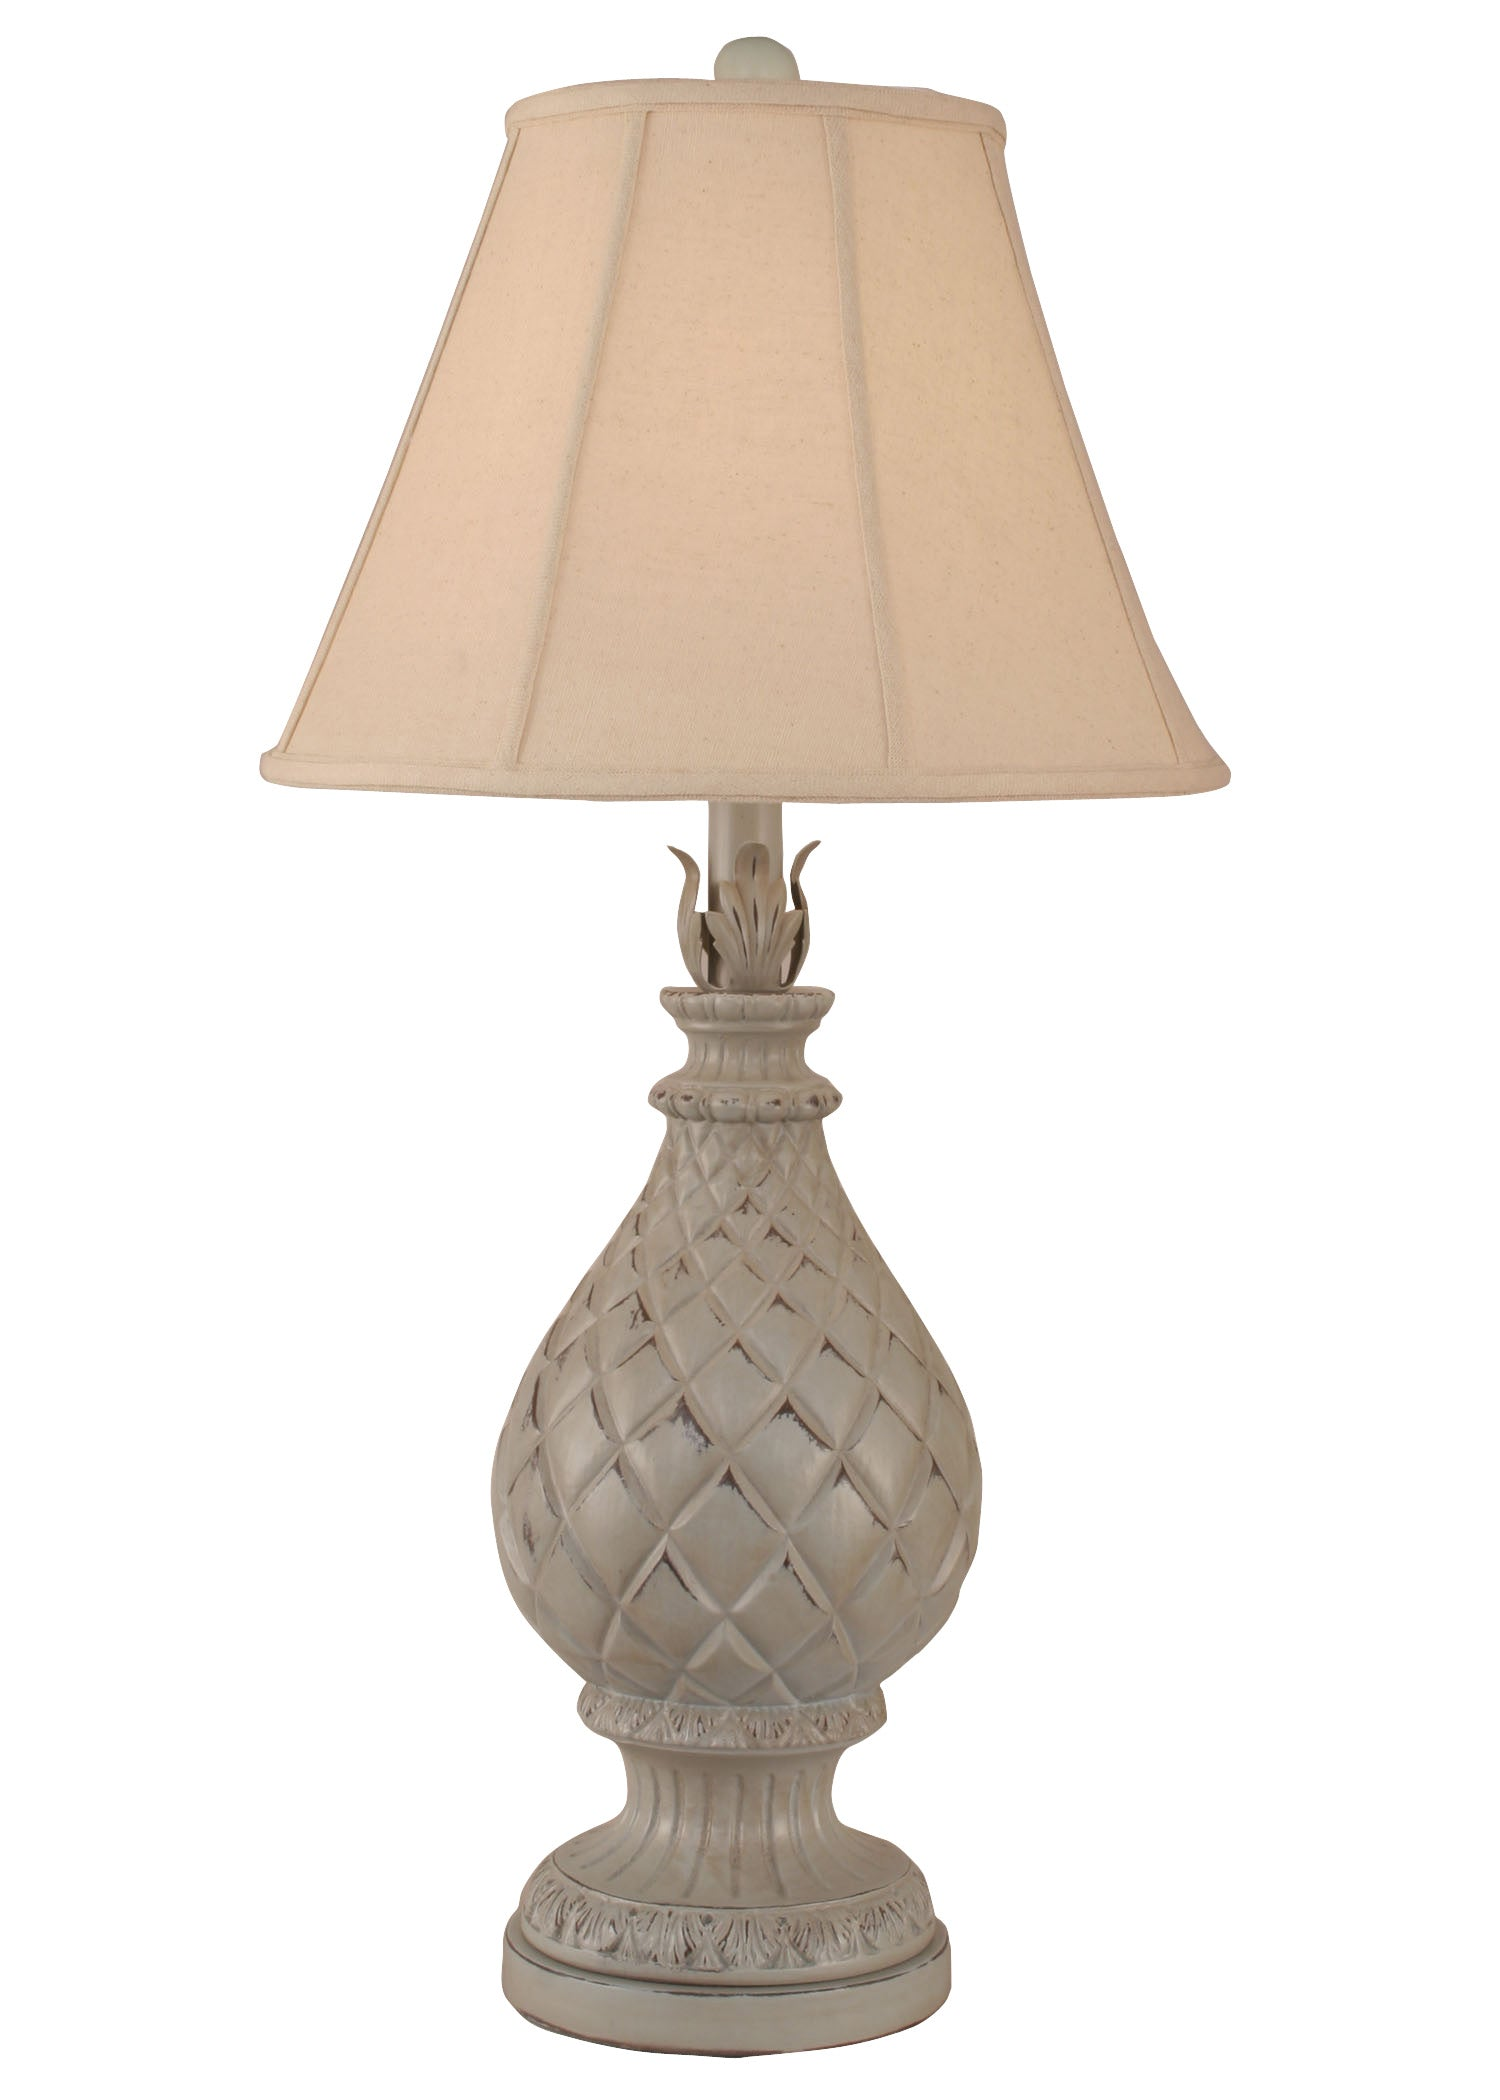 Distressed Seaside Villa Regal Pineapple Table Lamp - Coast Lamp Shop